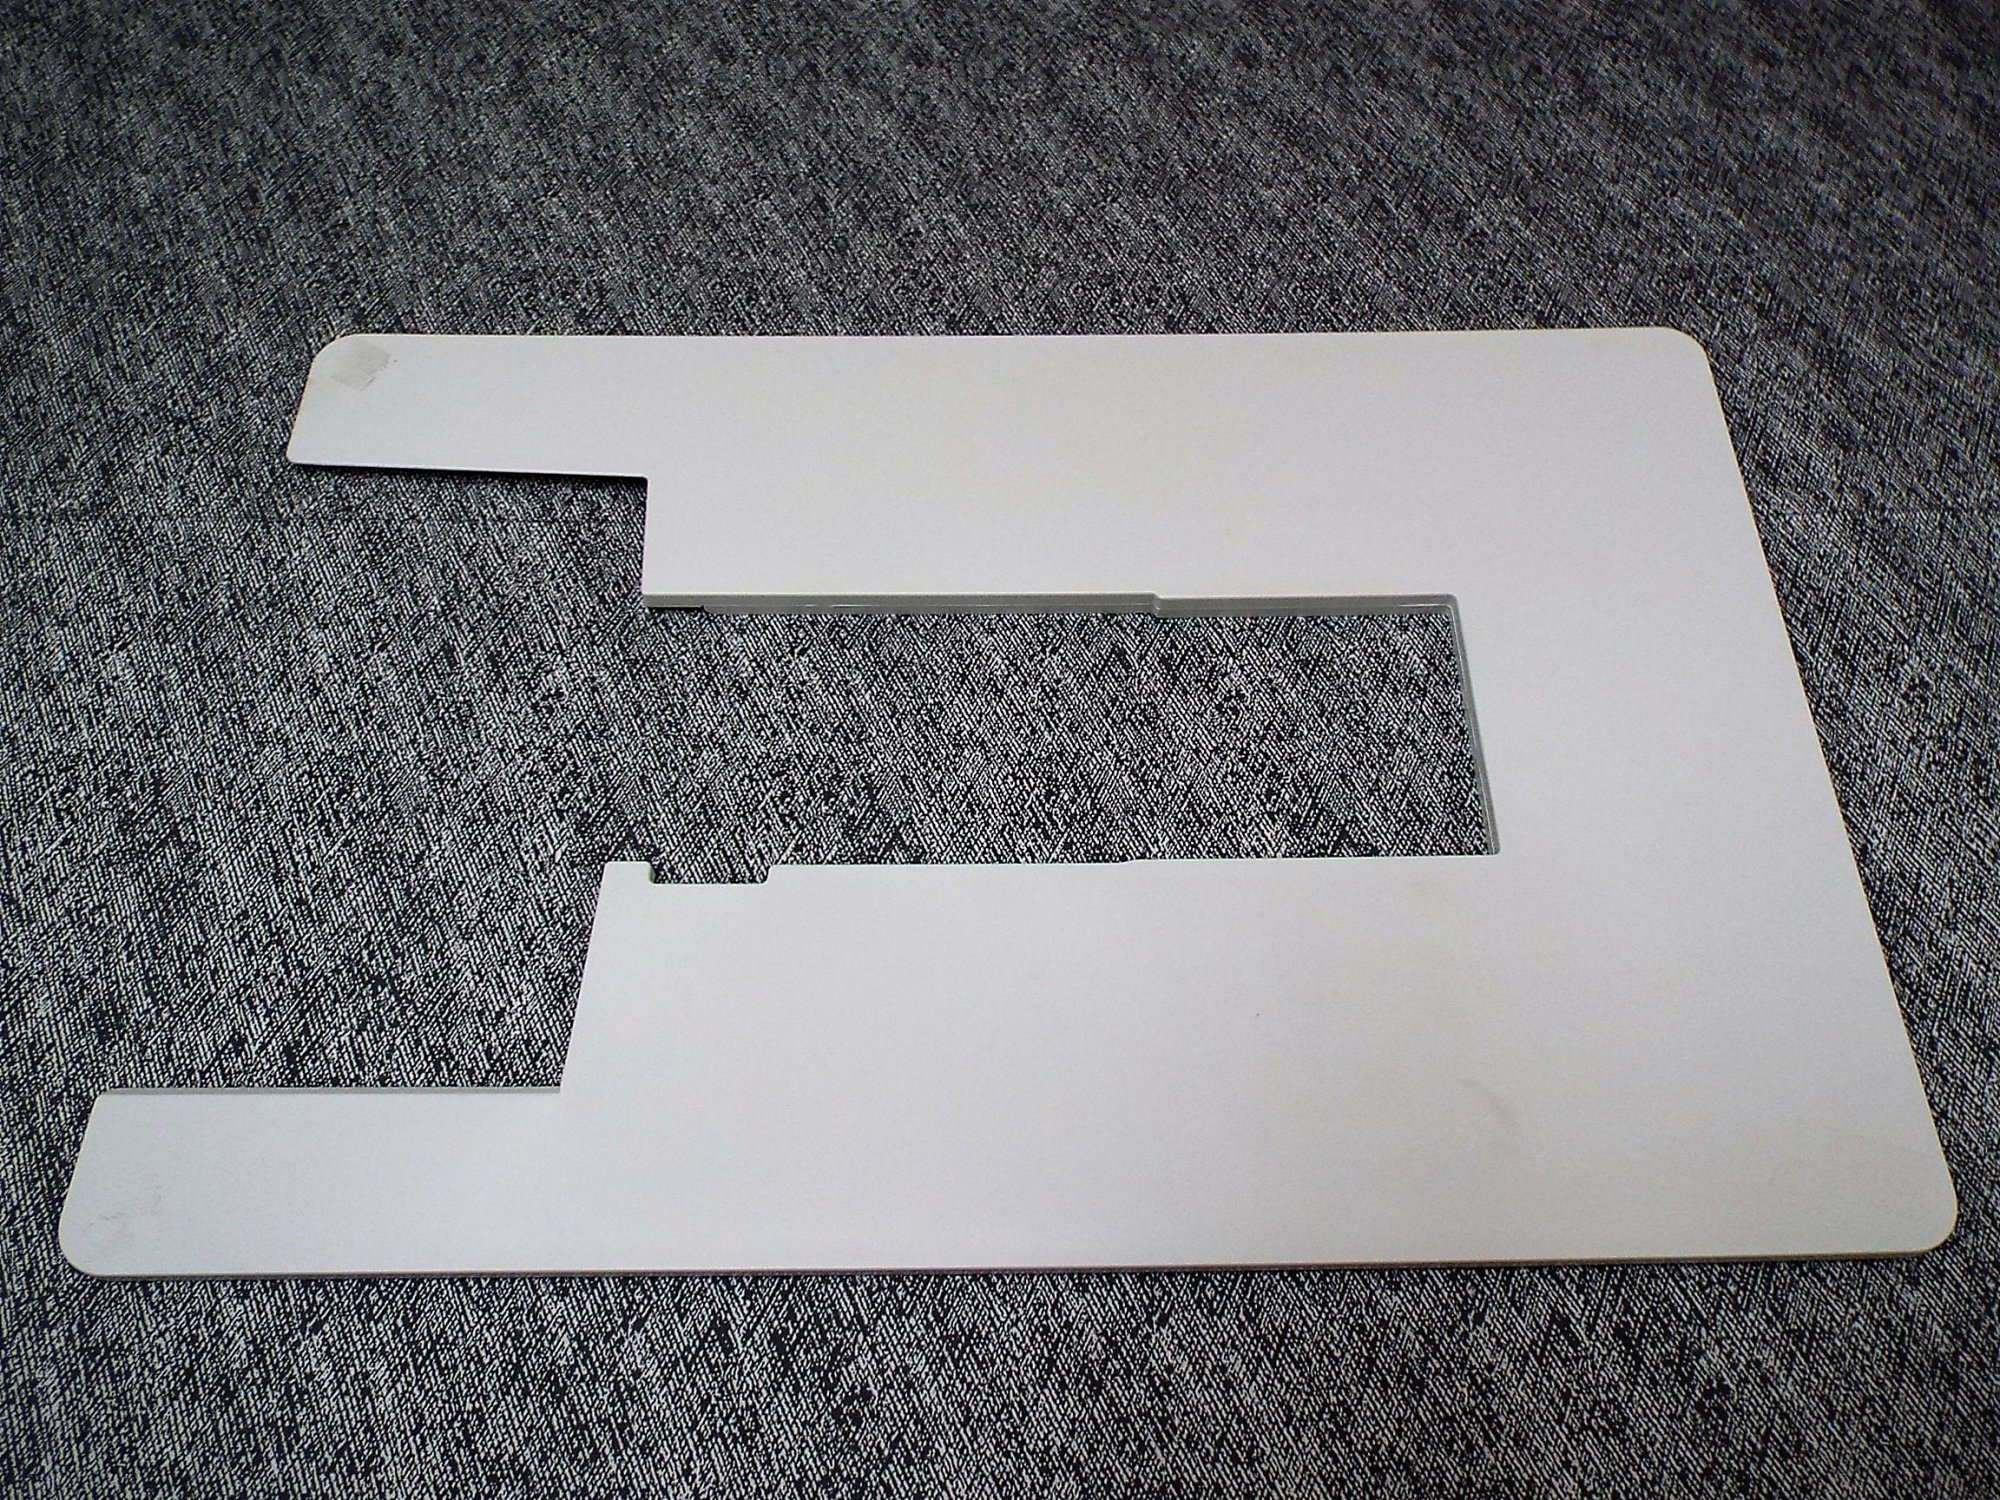 Janome Insert Plate D